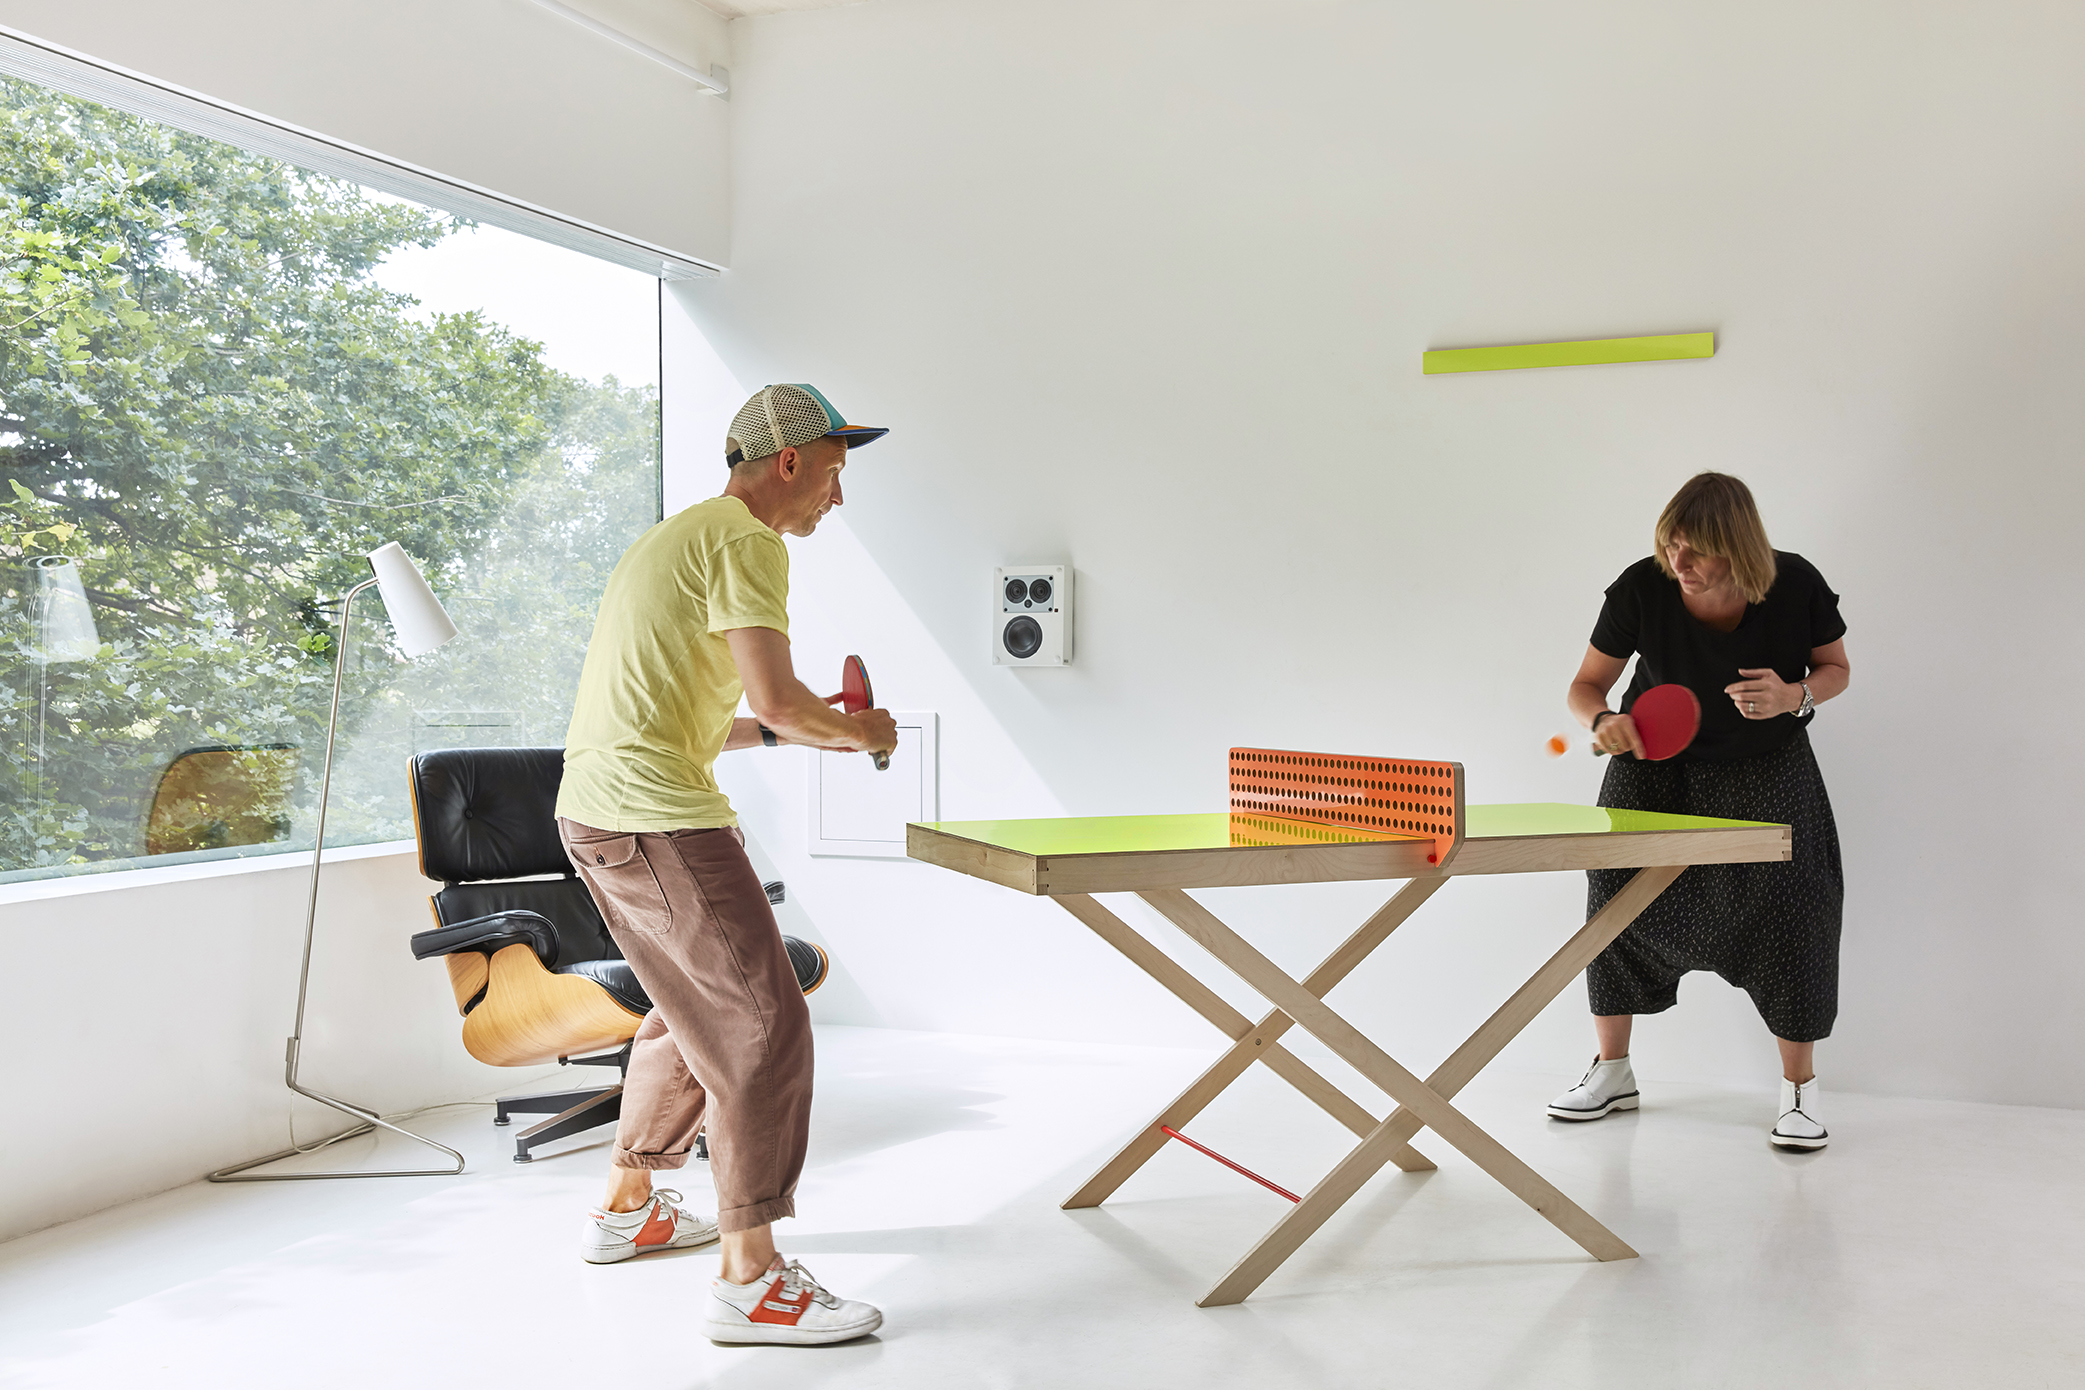 46 - Pressential PR press release - Fluo Ping Pong